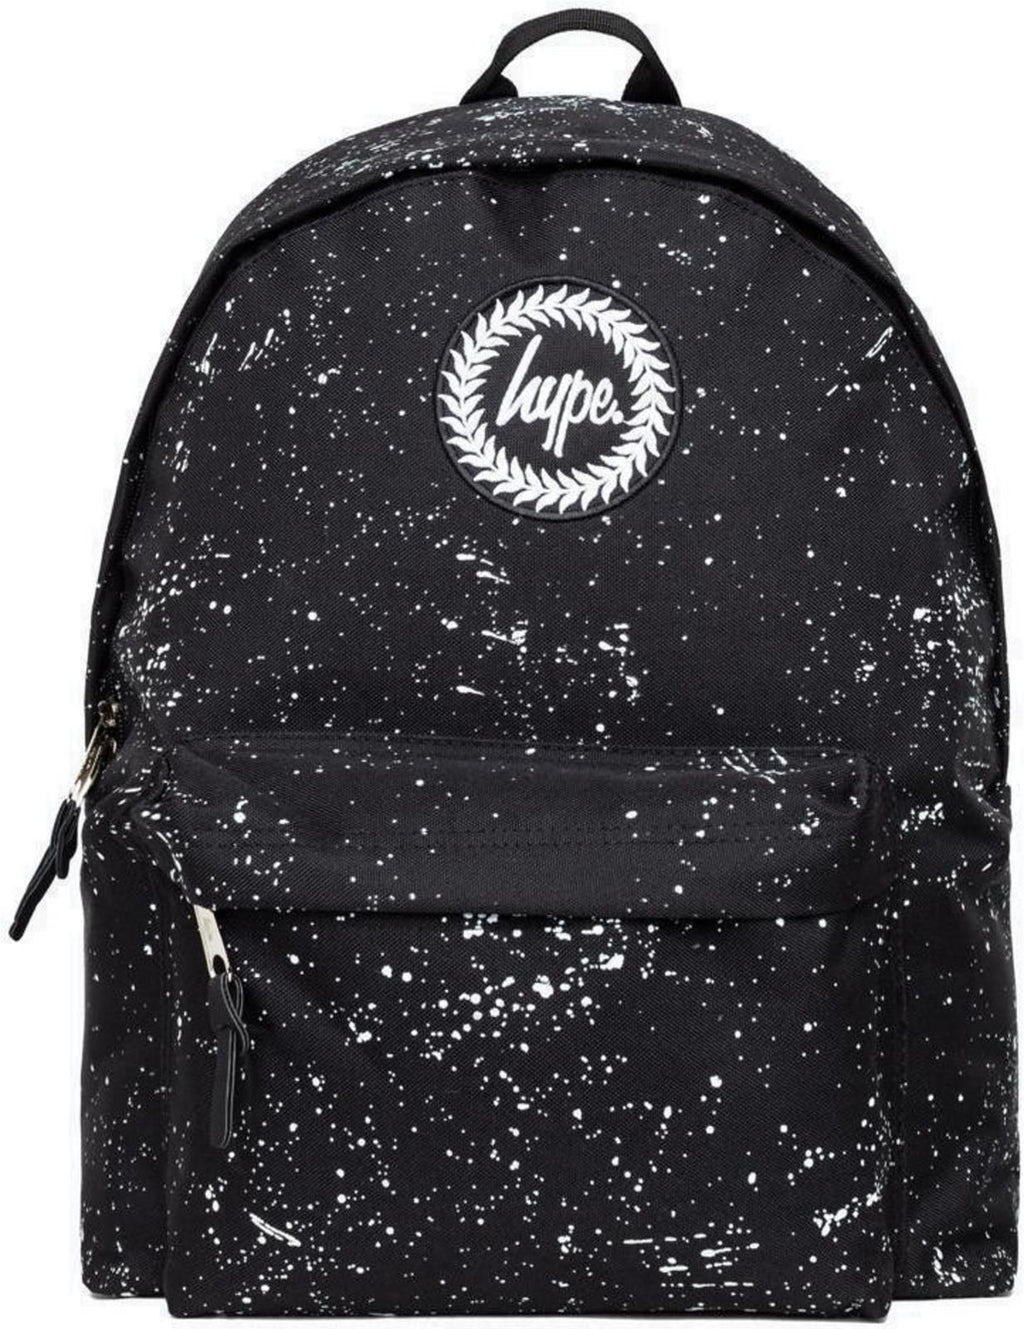 Hype Speckle Backpack Bag Black/White